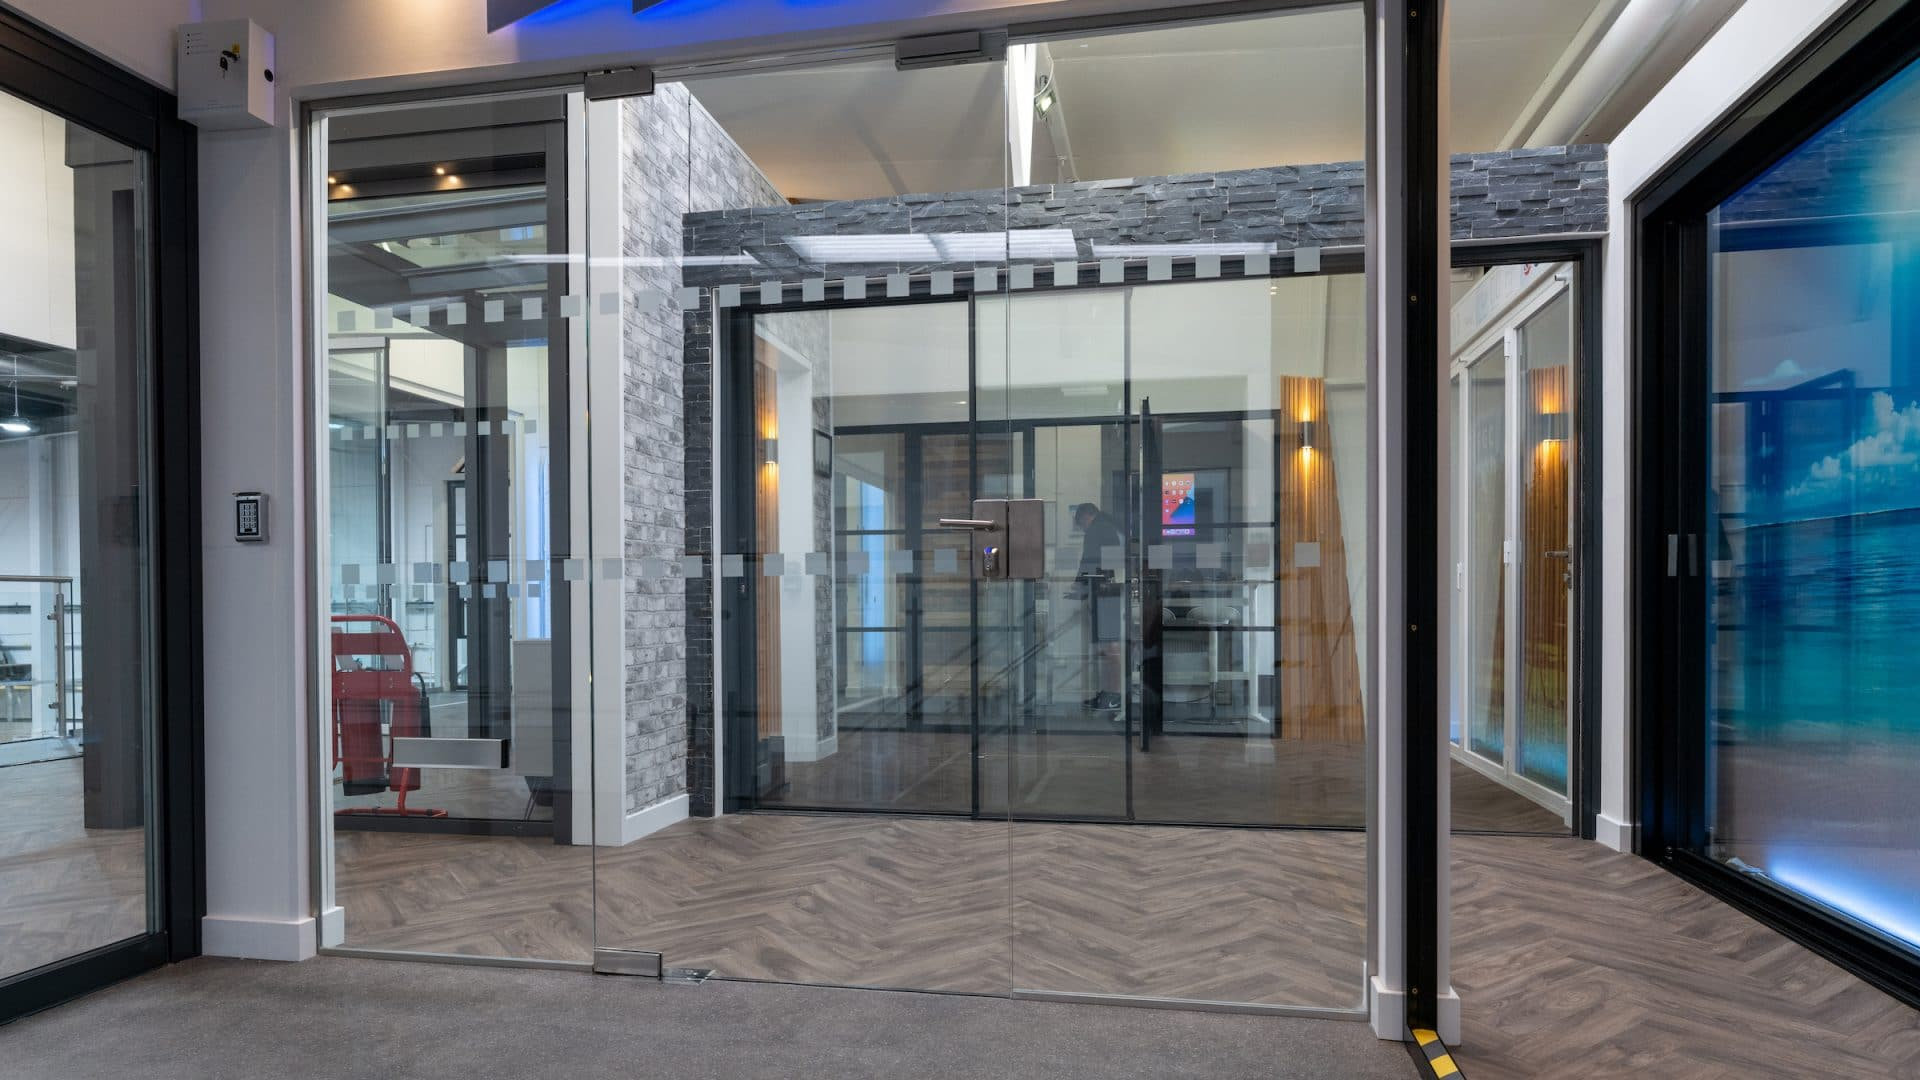 frameless glass porch in a showroom